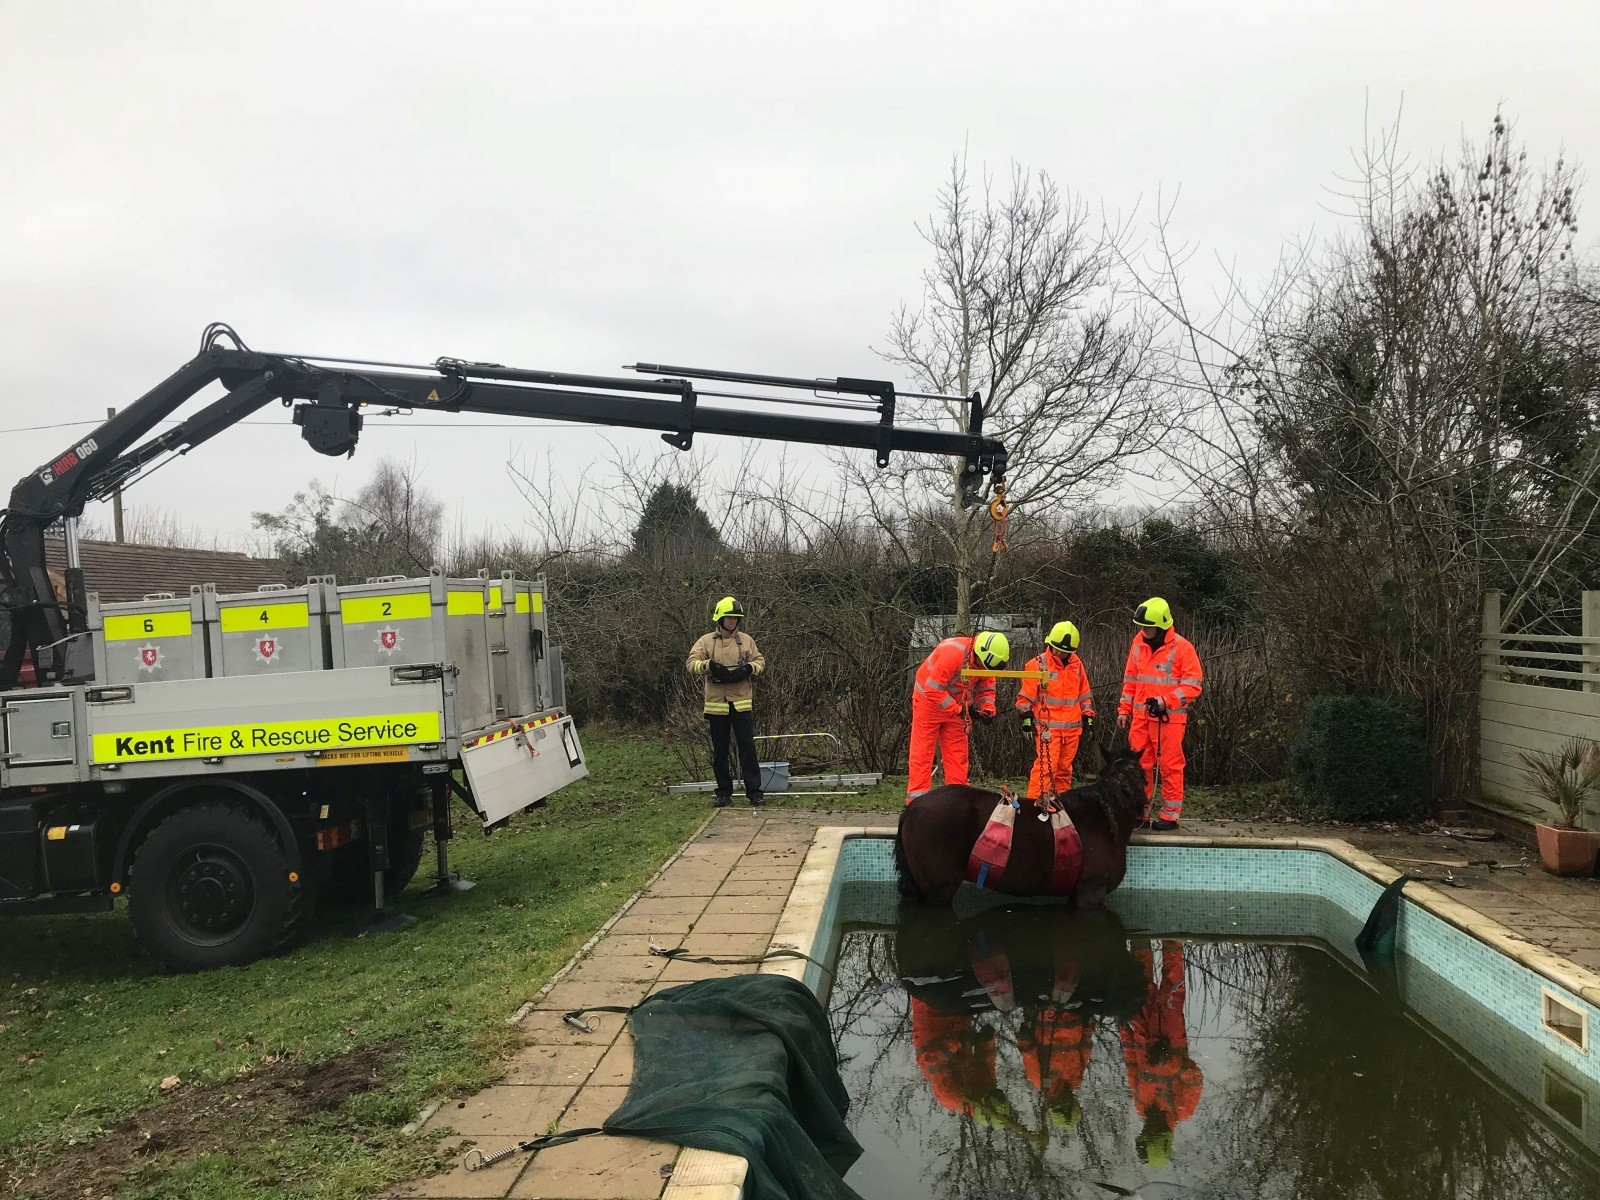 Horse Had To Be Winched Out Of A Swimming Pool After Wandering In On New Year's Eve